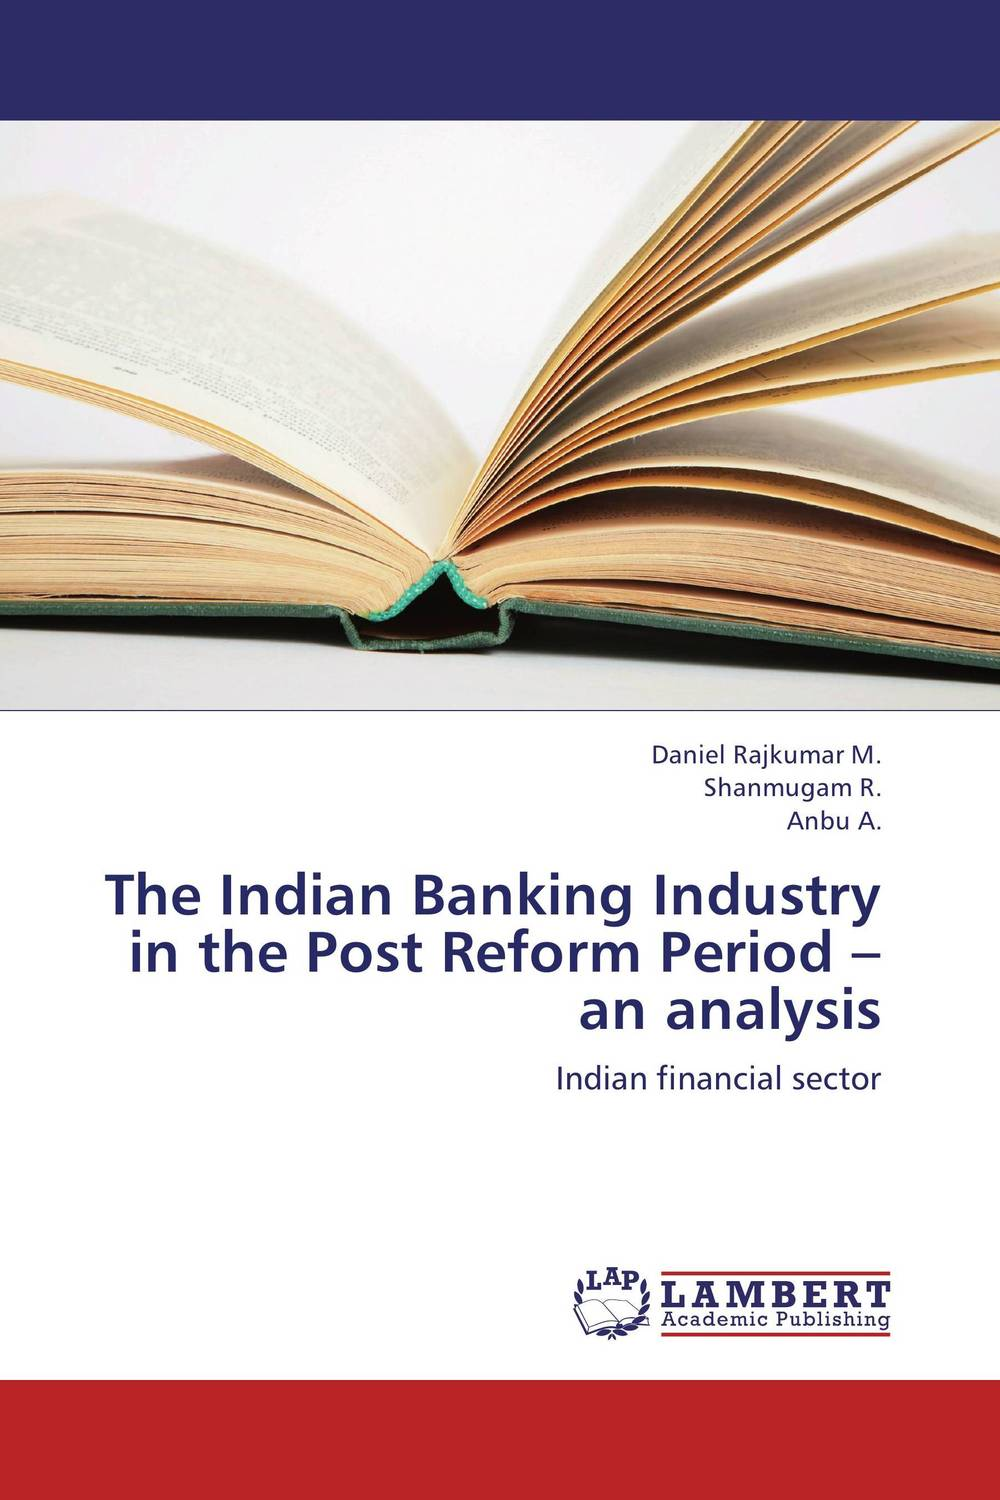 The Indian Banking Industry in the Post Reform Period – an analysis